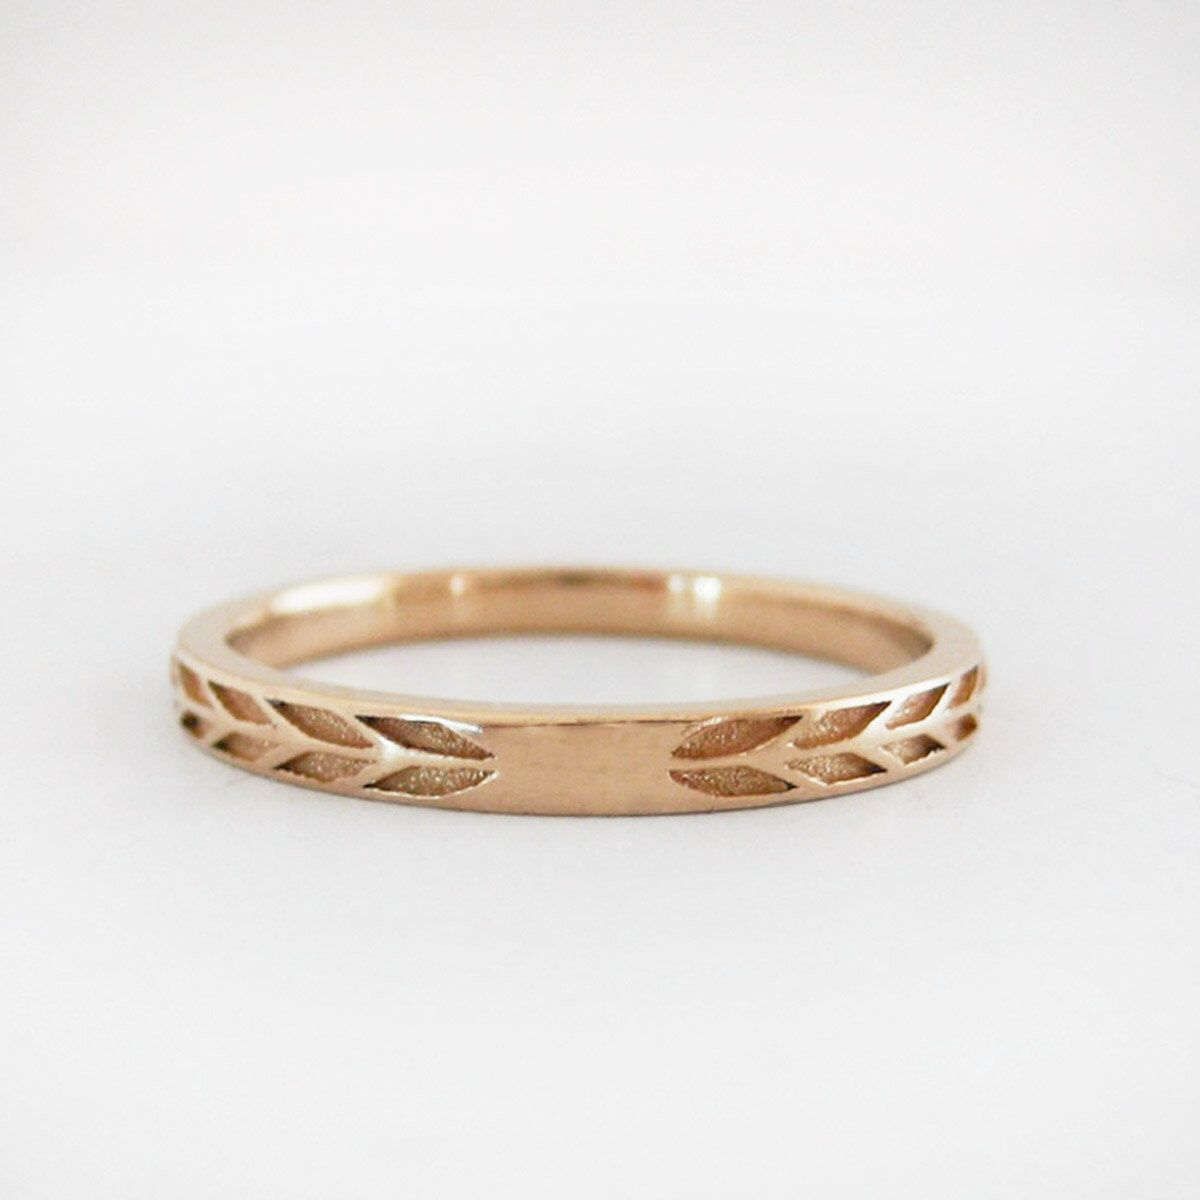 2mm Rose Gold Wedding Band Gold Arrow Wedding Band Eco friendly